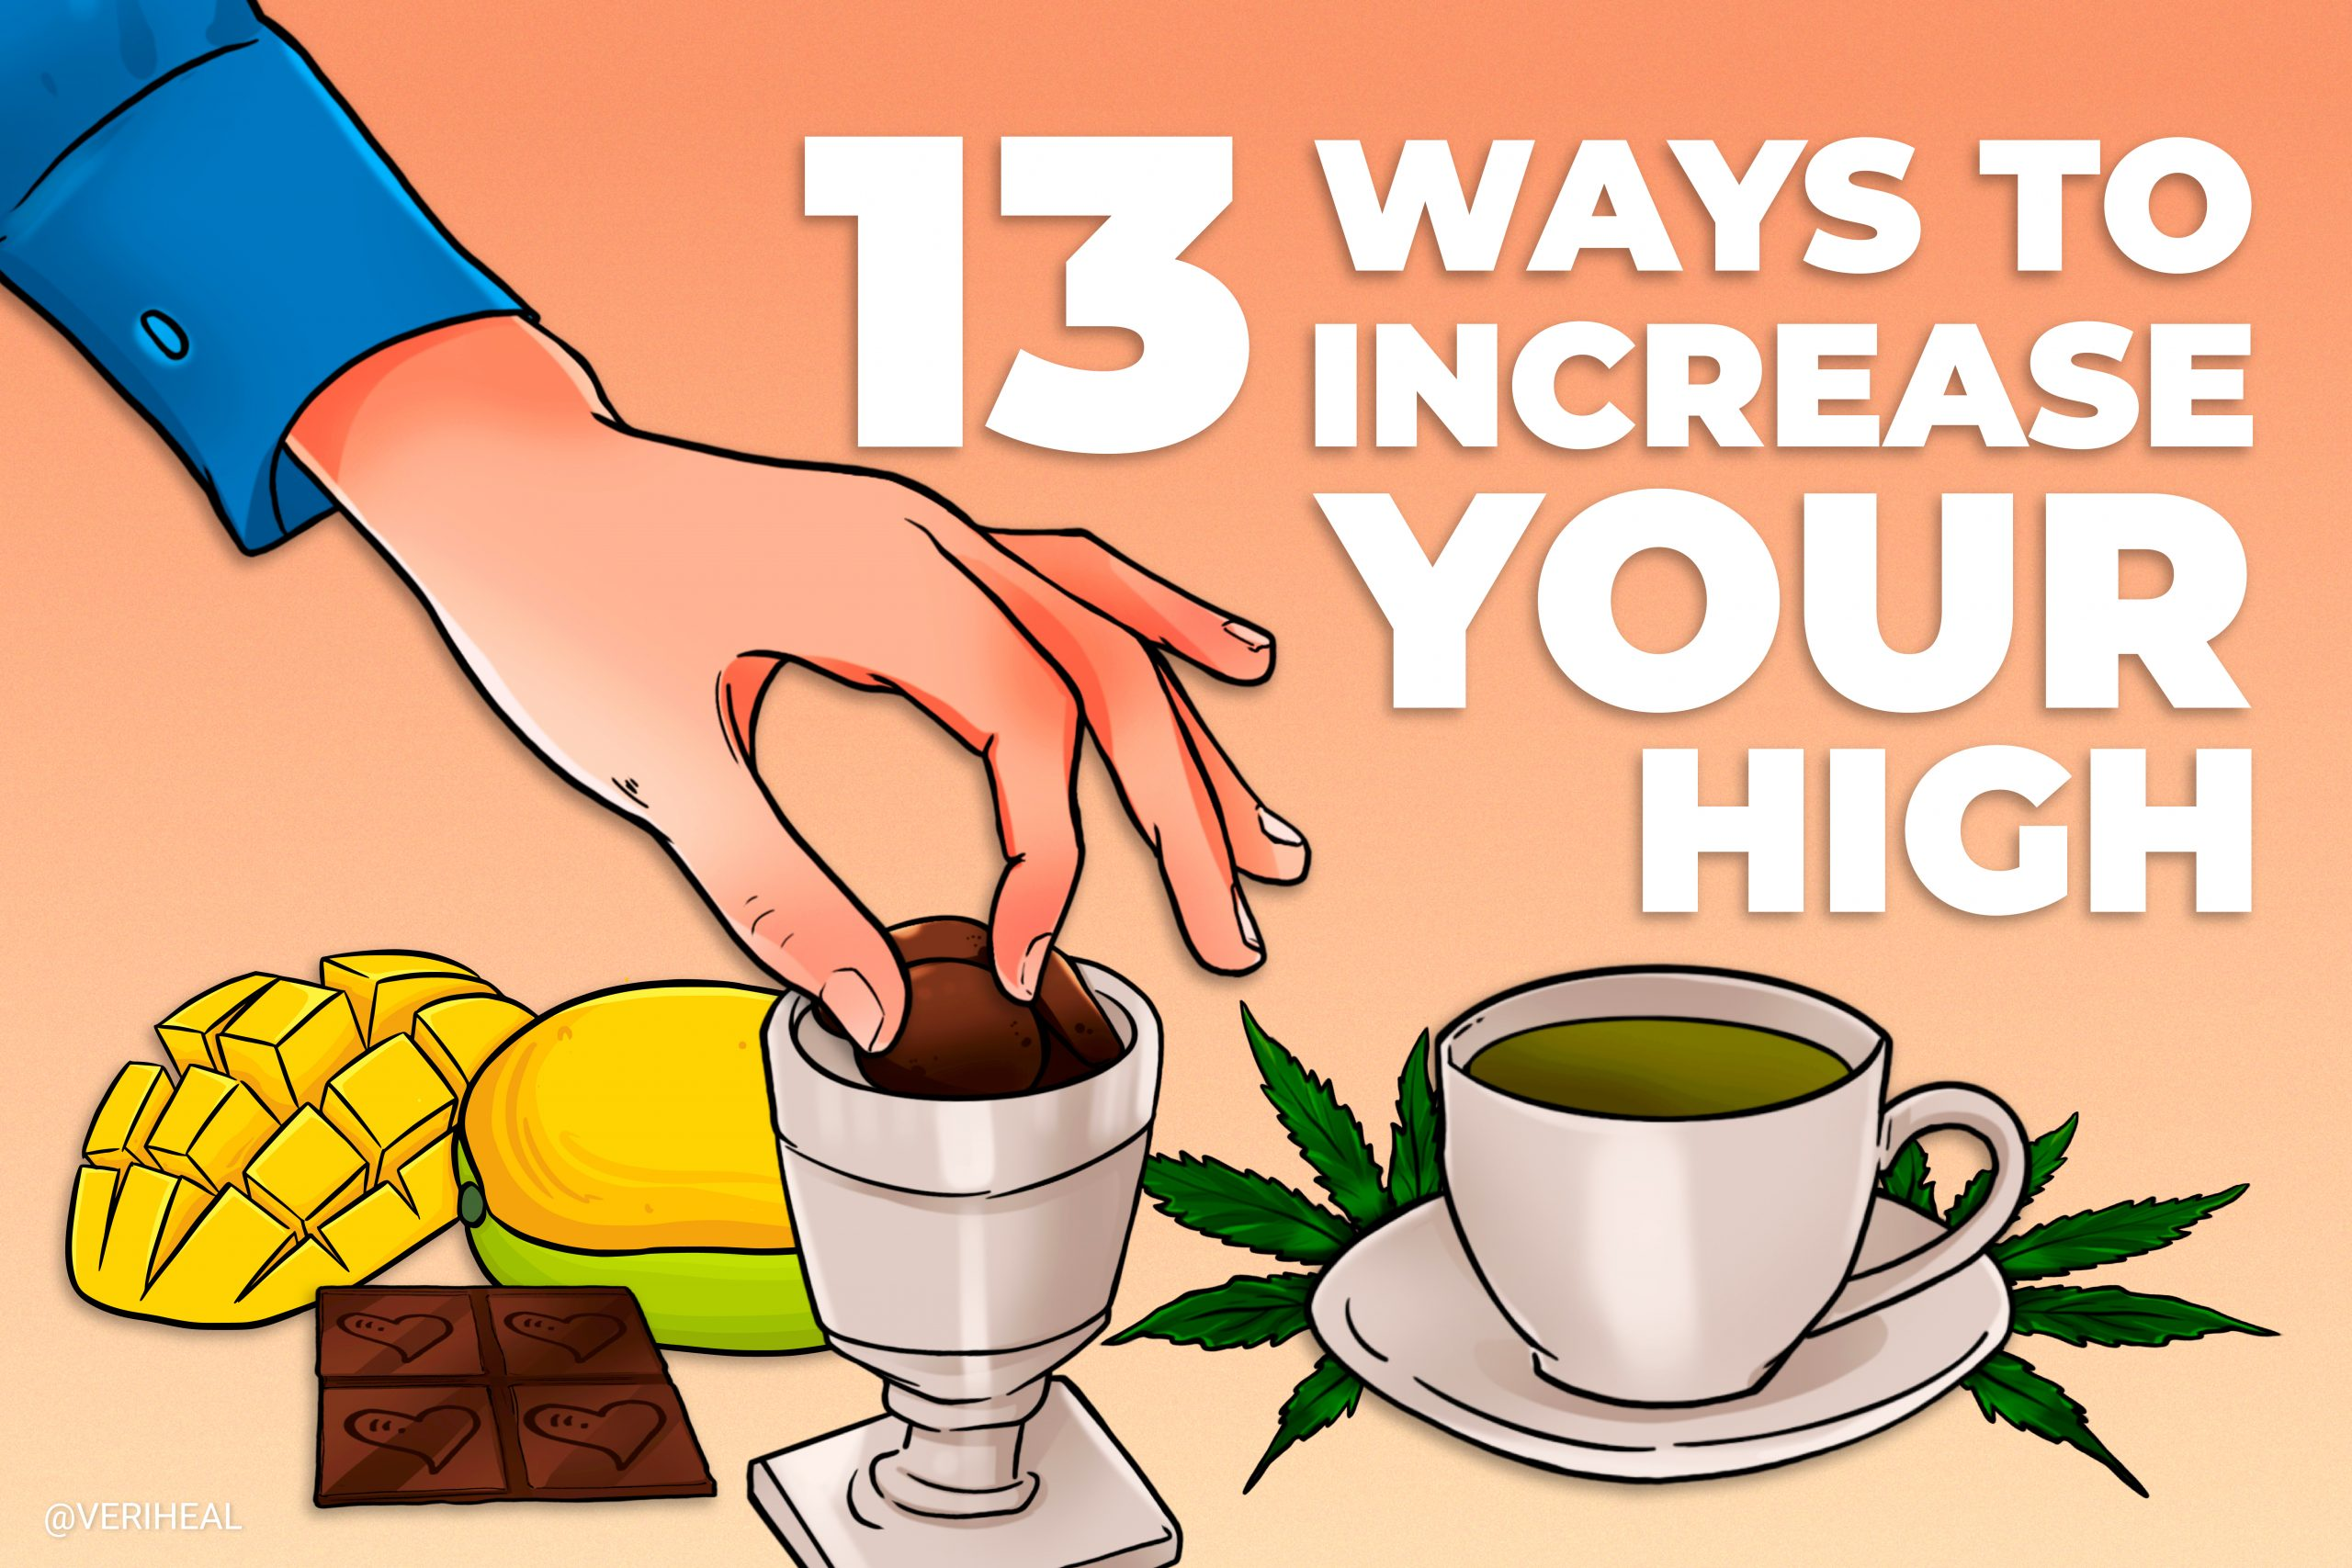 13 Ways to Enhance Your High and Make It Last Longer